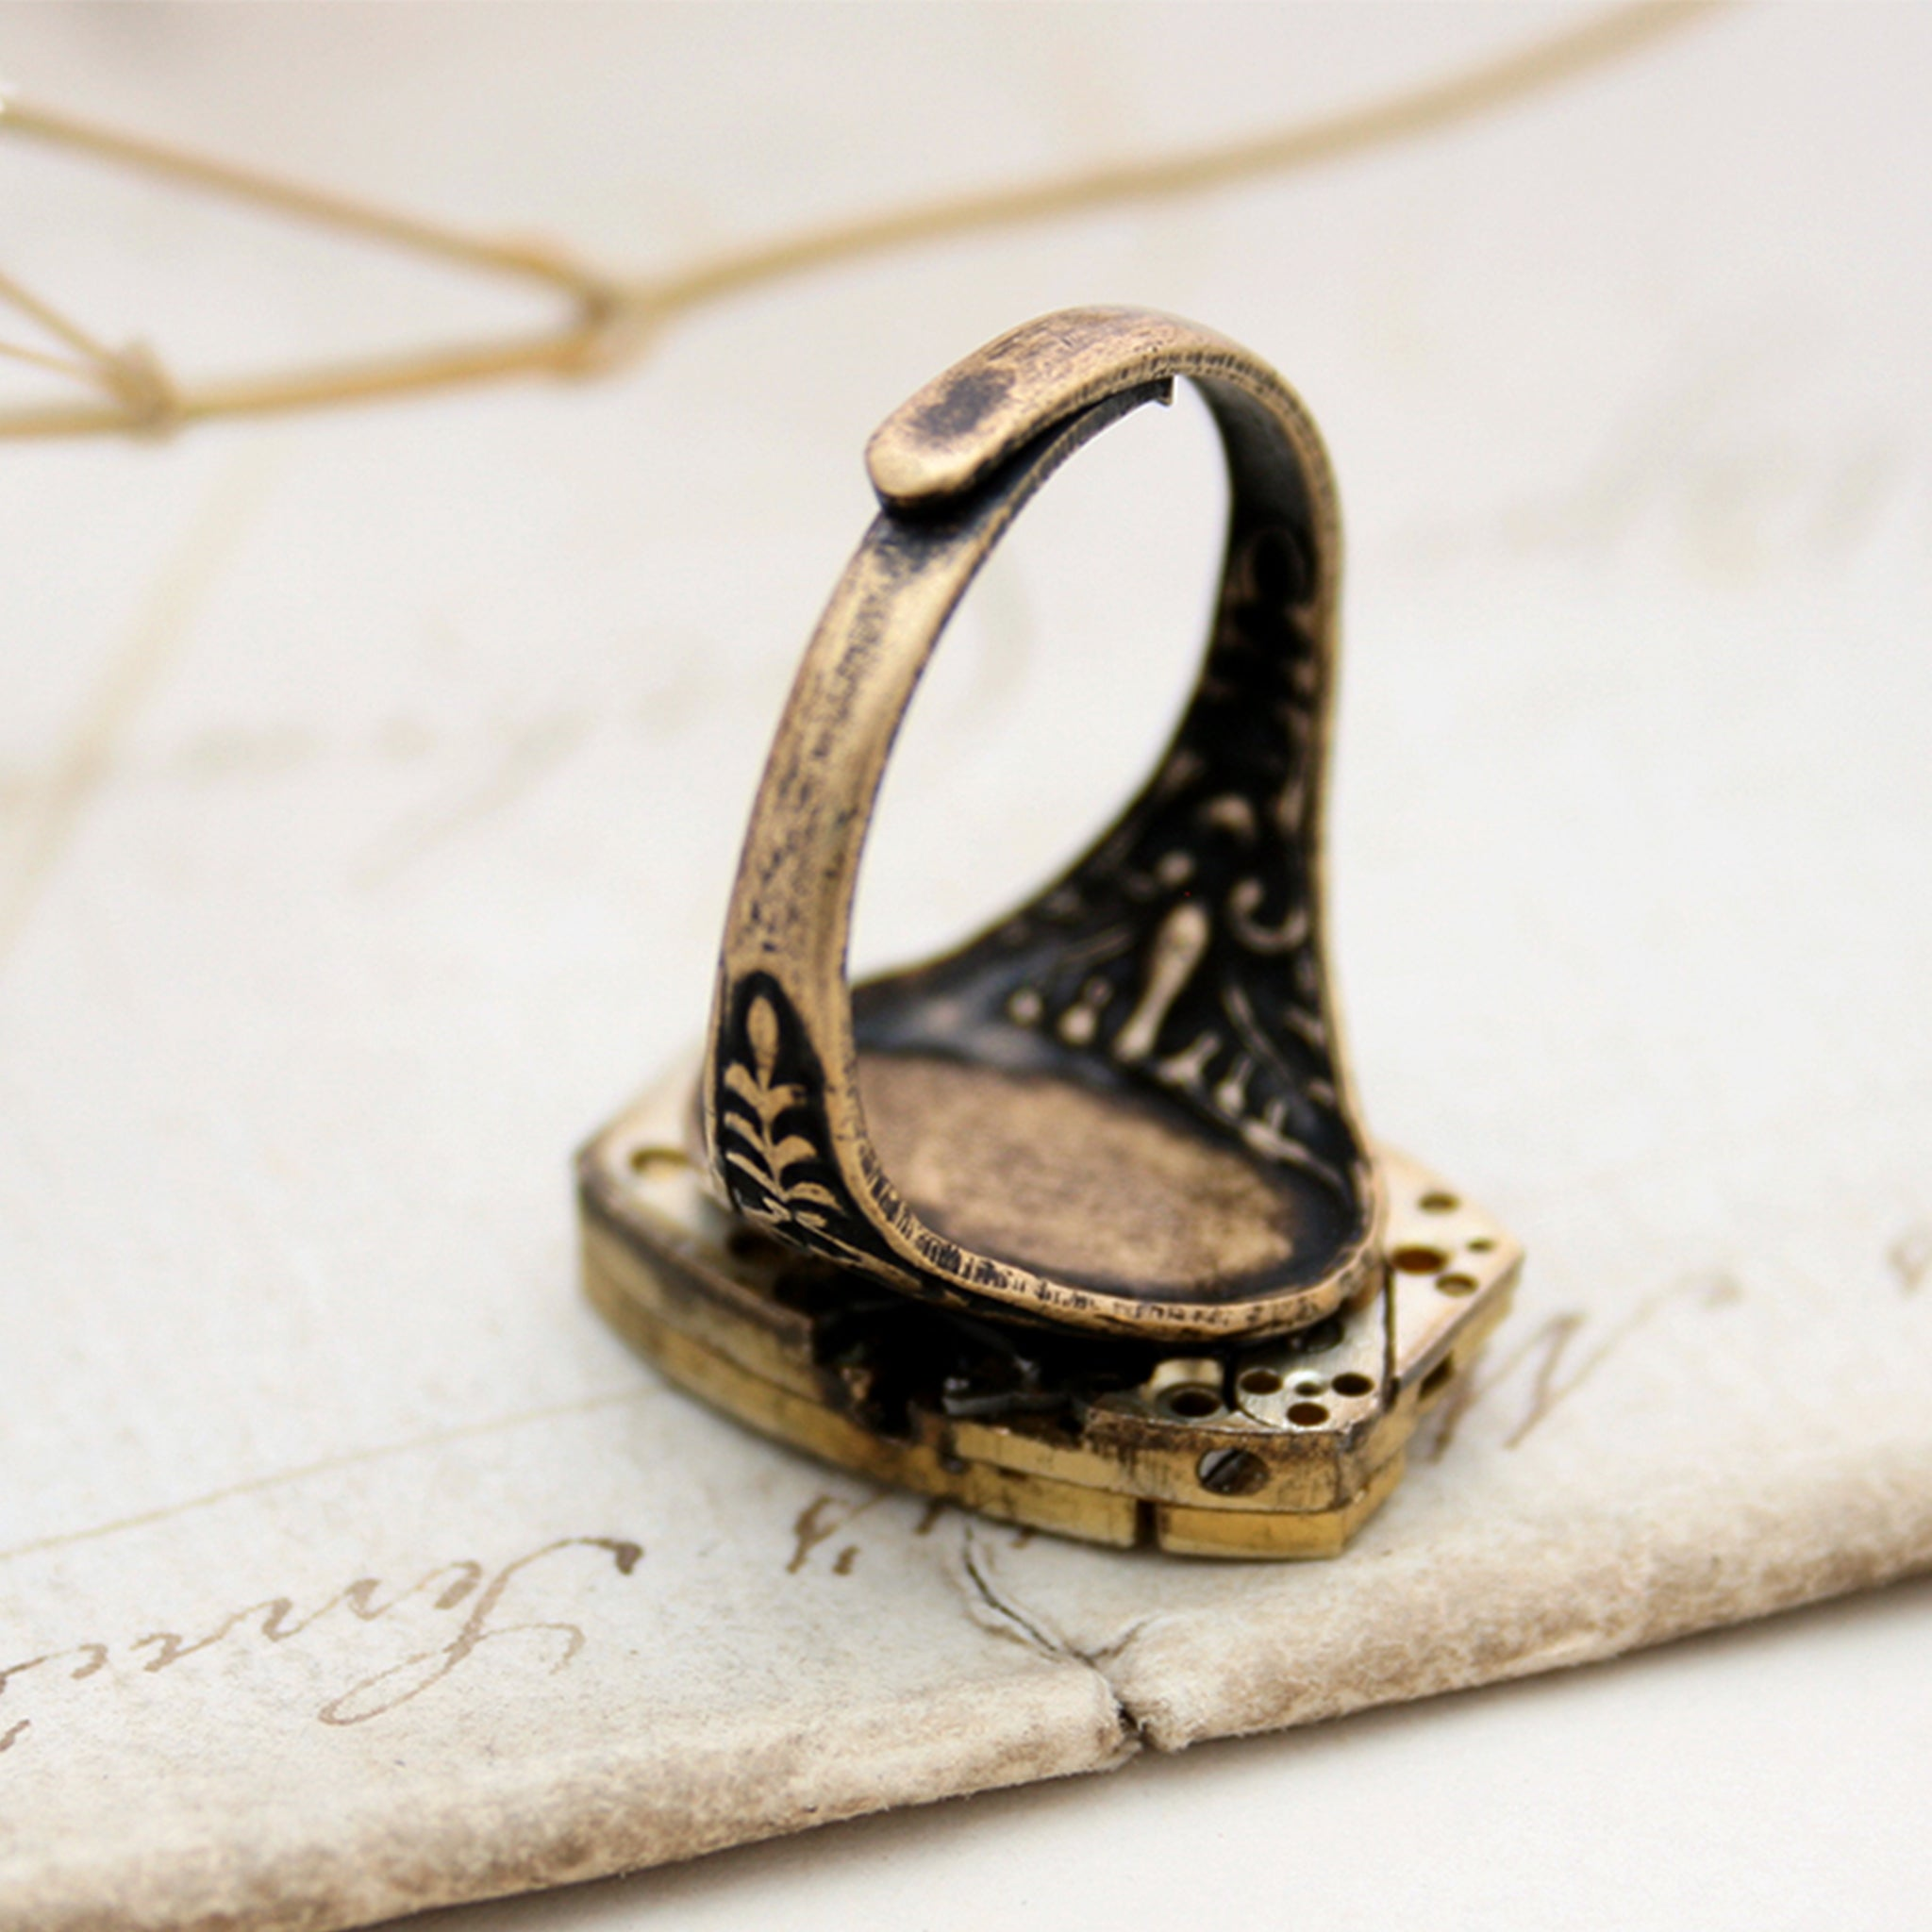 Adjustable ring band in Golden Steampunk Signet Ring